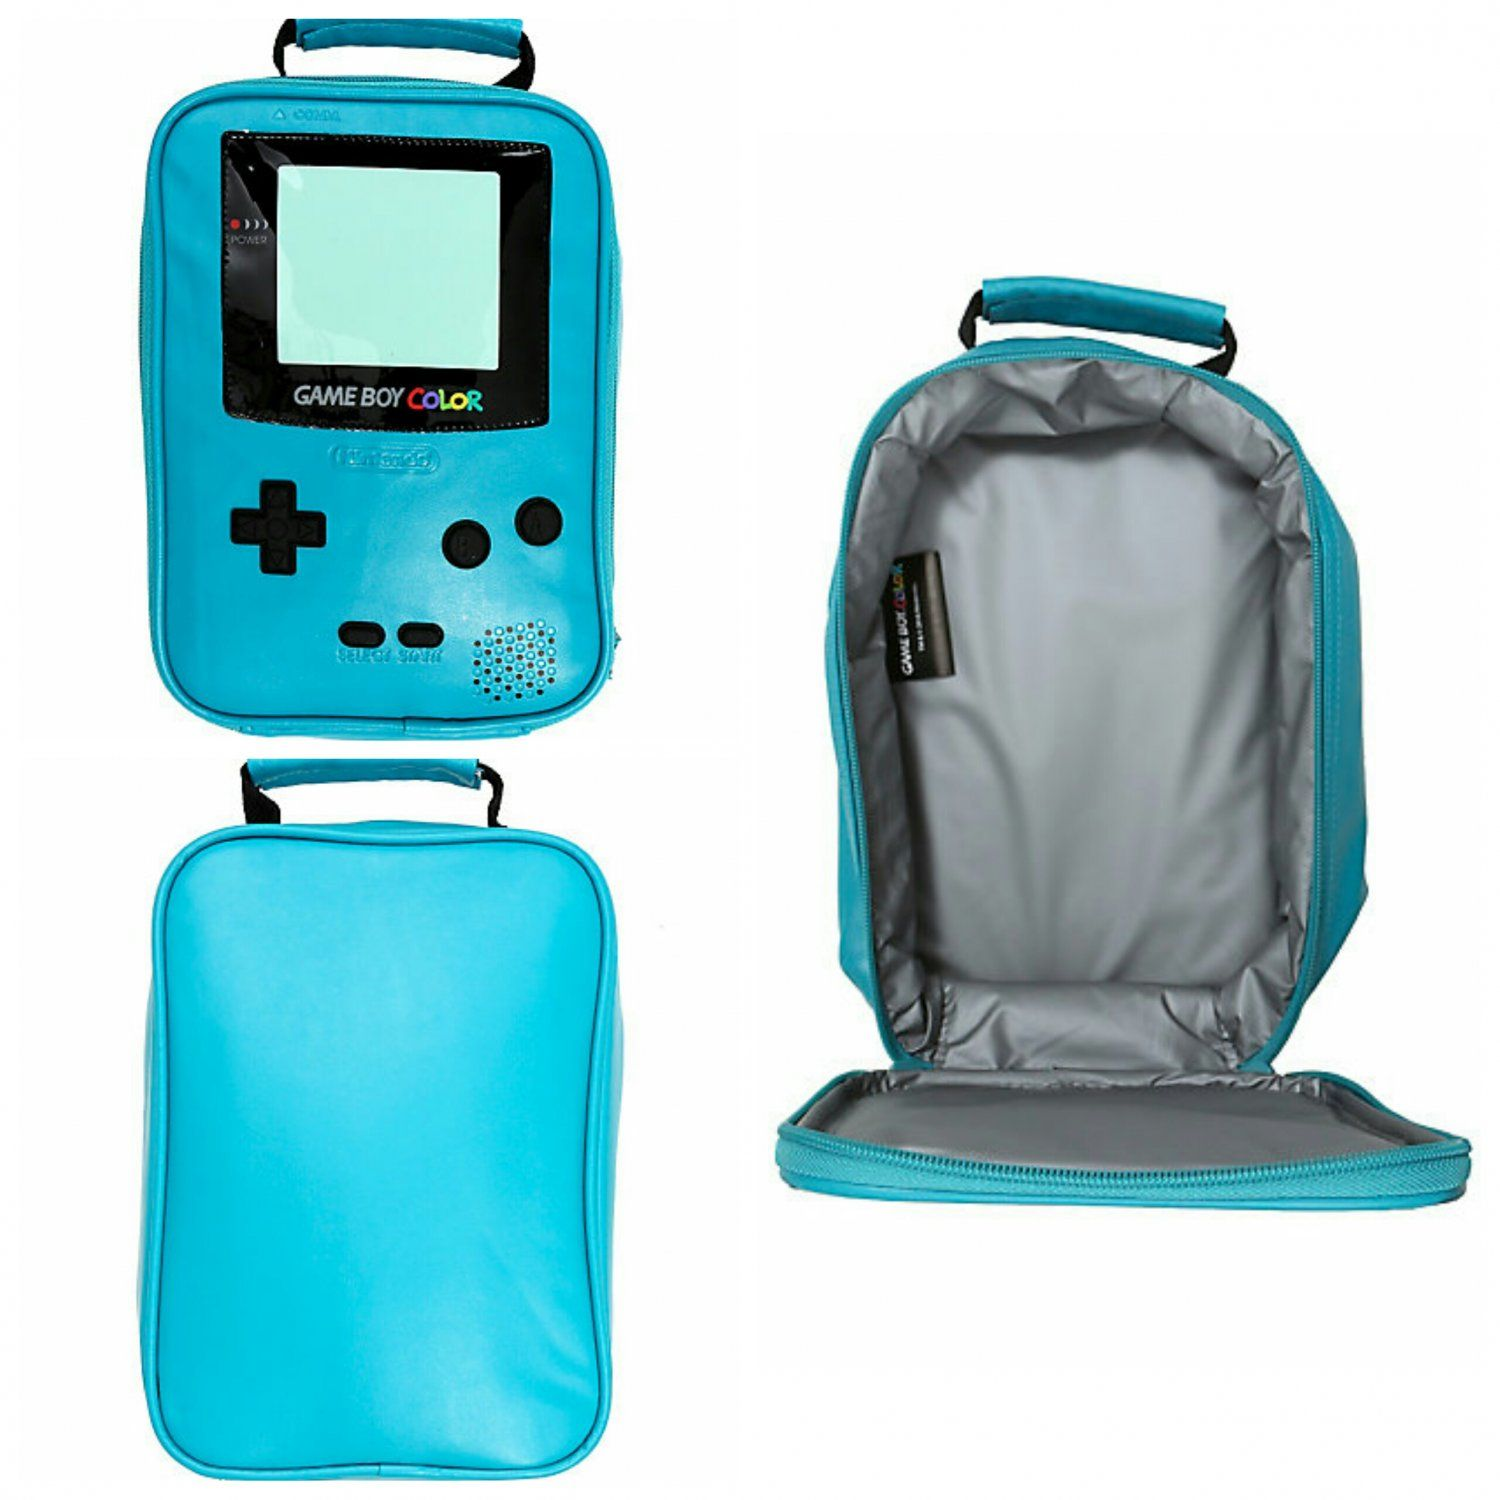 Game cooler bags - Nintendo Game Boy Color Lunch Box Cooler Bag